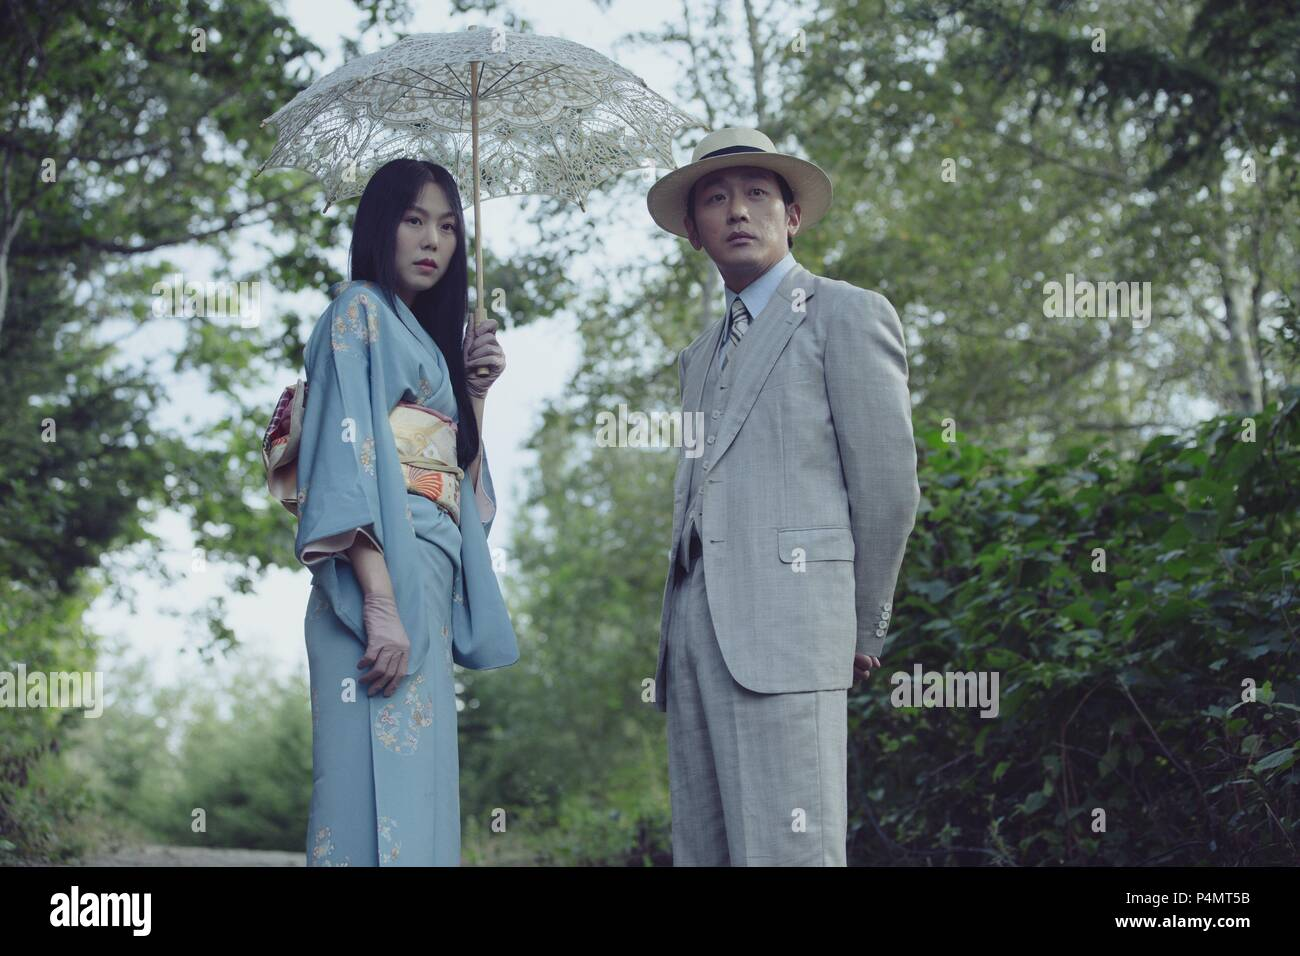 Jung Woo Kim Stock Photos & Jung Woo Kim Stock Images - Alamy